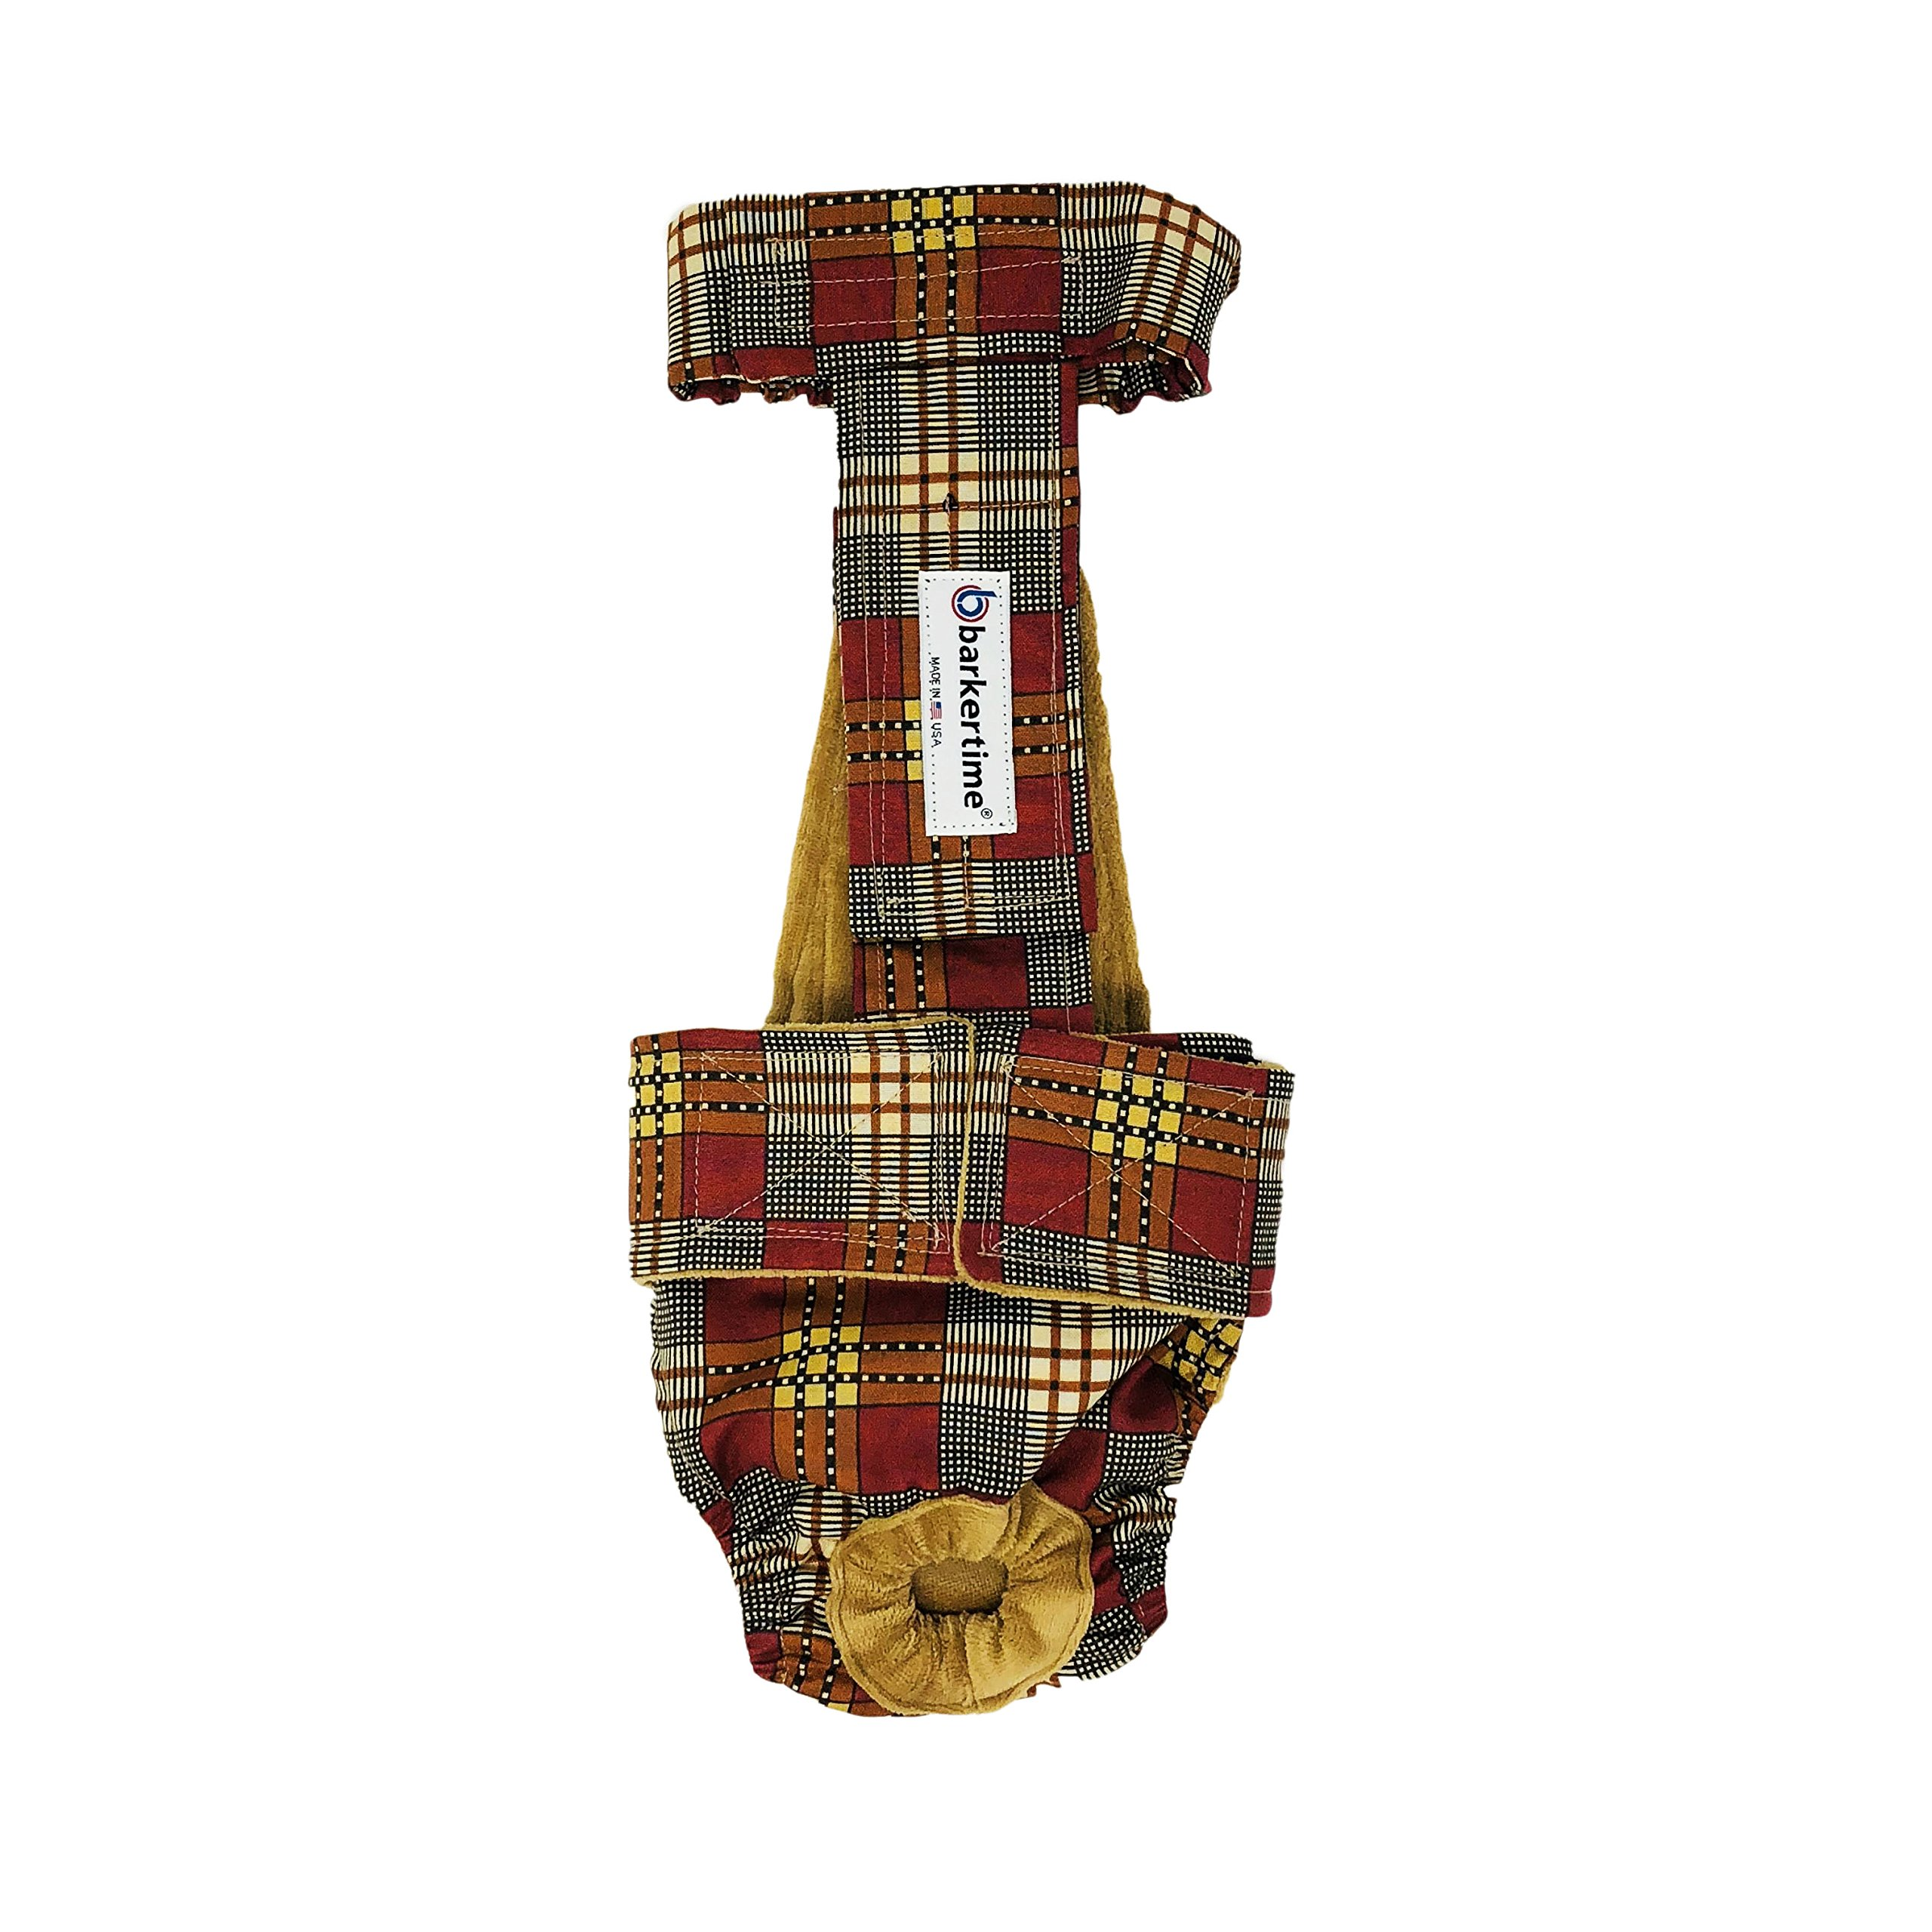 Dog Diaper Overall - Made in USA - Brown and Red Plaid Escape-Proof Washable Dog Diaper Overall, XXL, Without Tail Hole for Dog Incontinence, Marking, Housetraining and Females in Heat